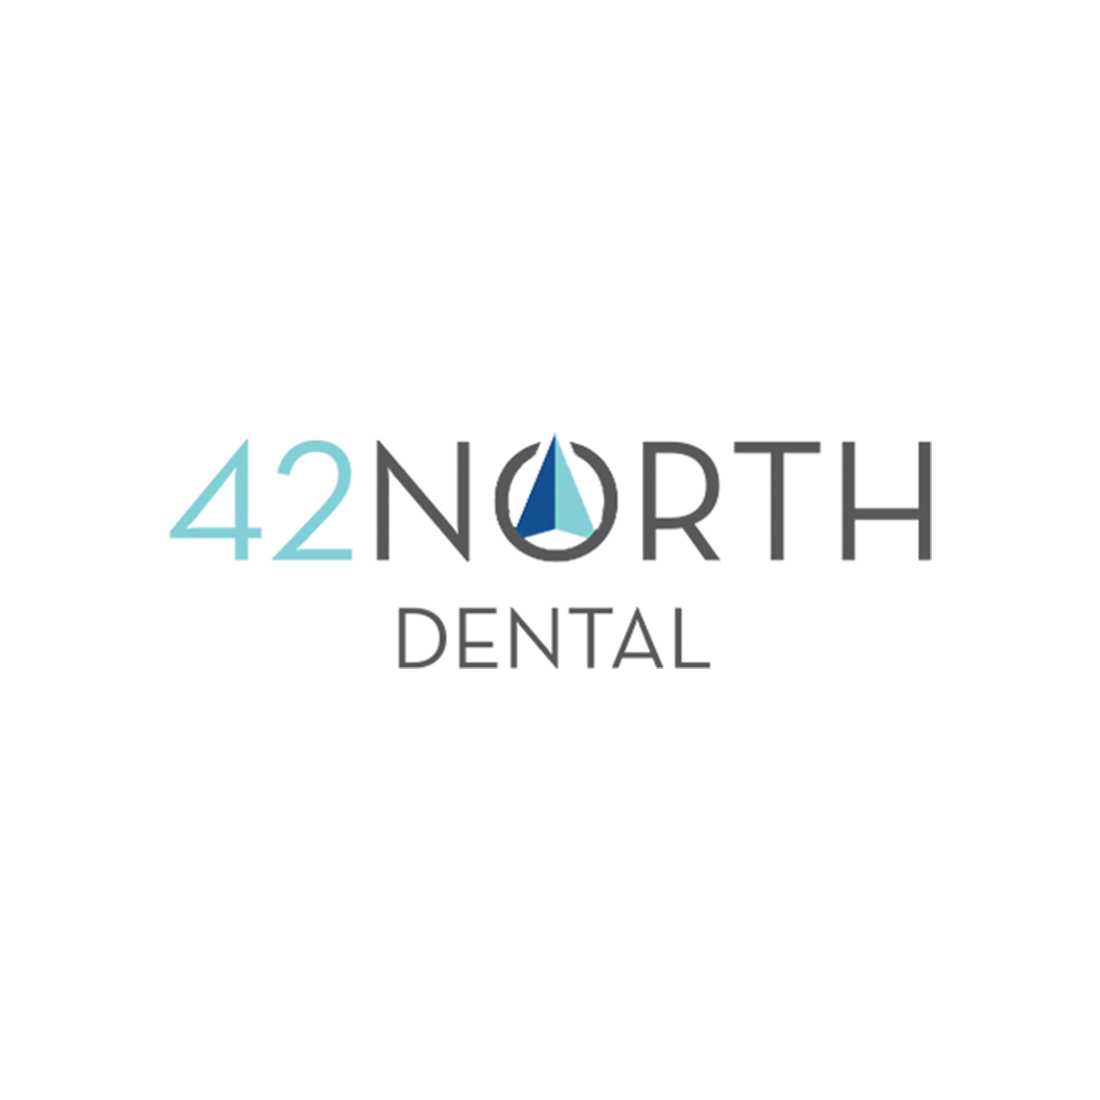 42 North Dental